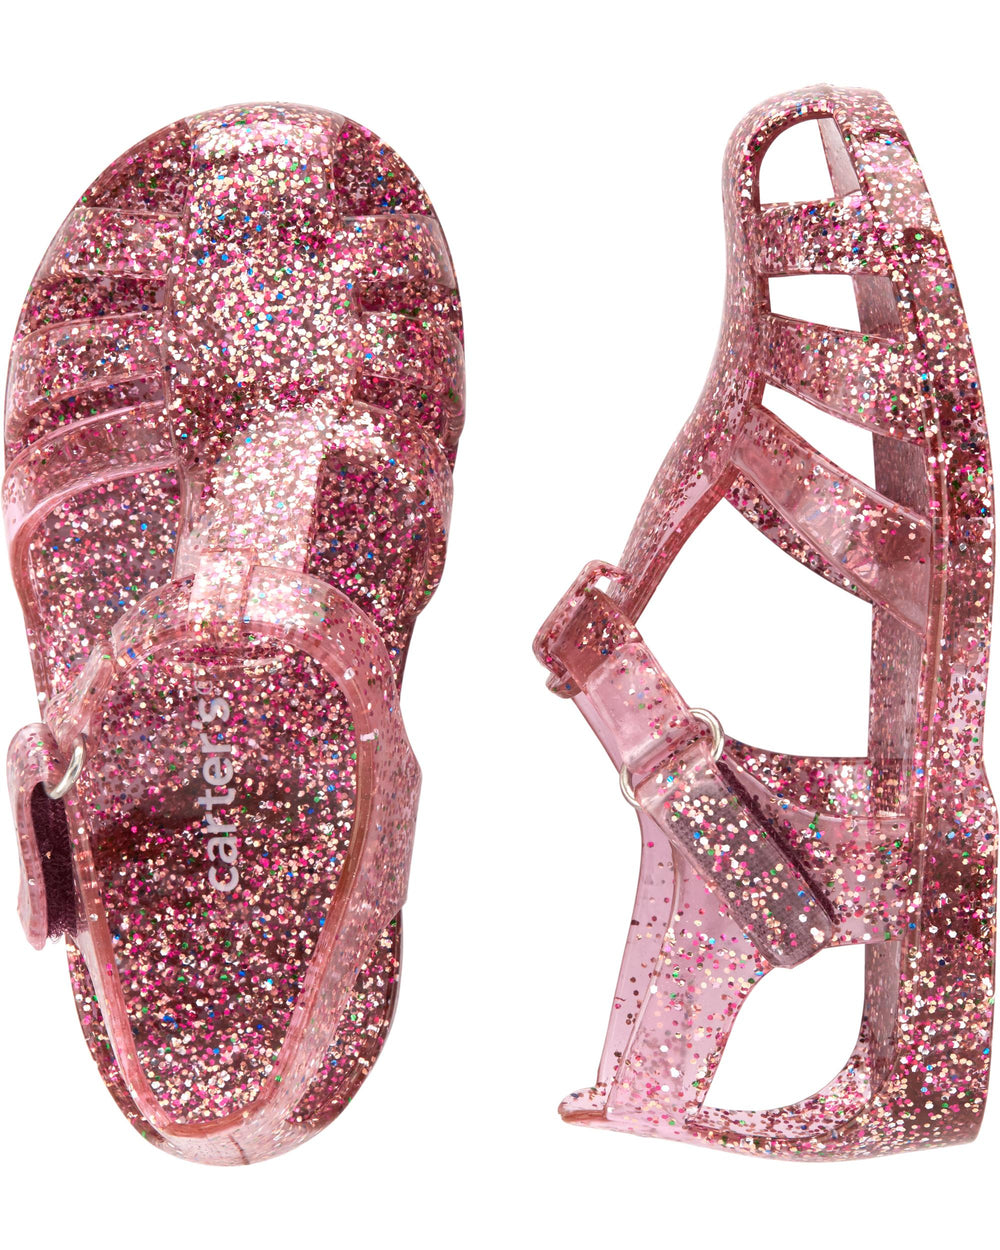 Carter's Glitter Jelly Sandals